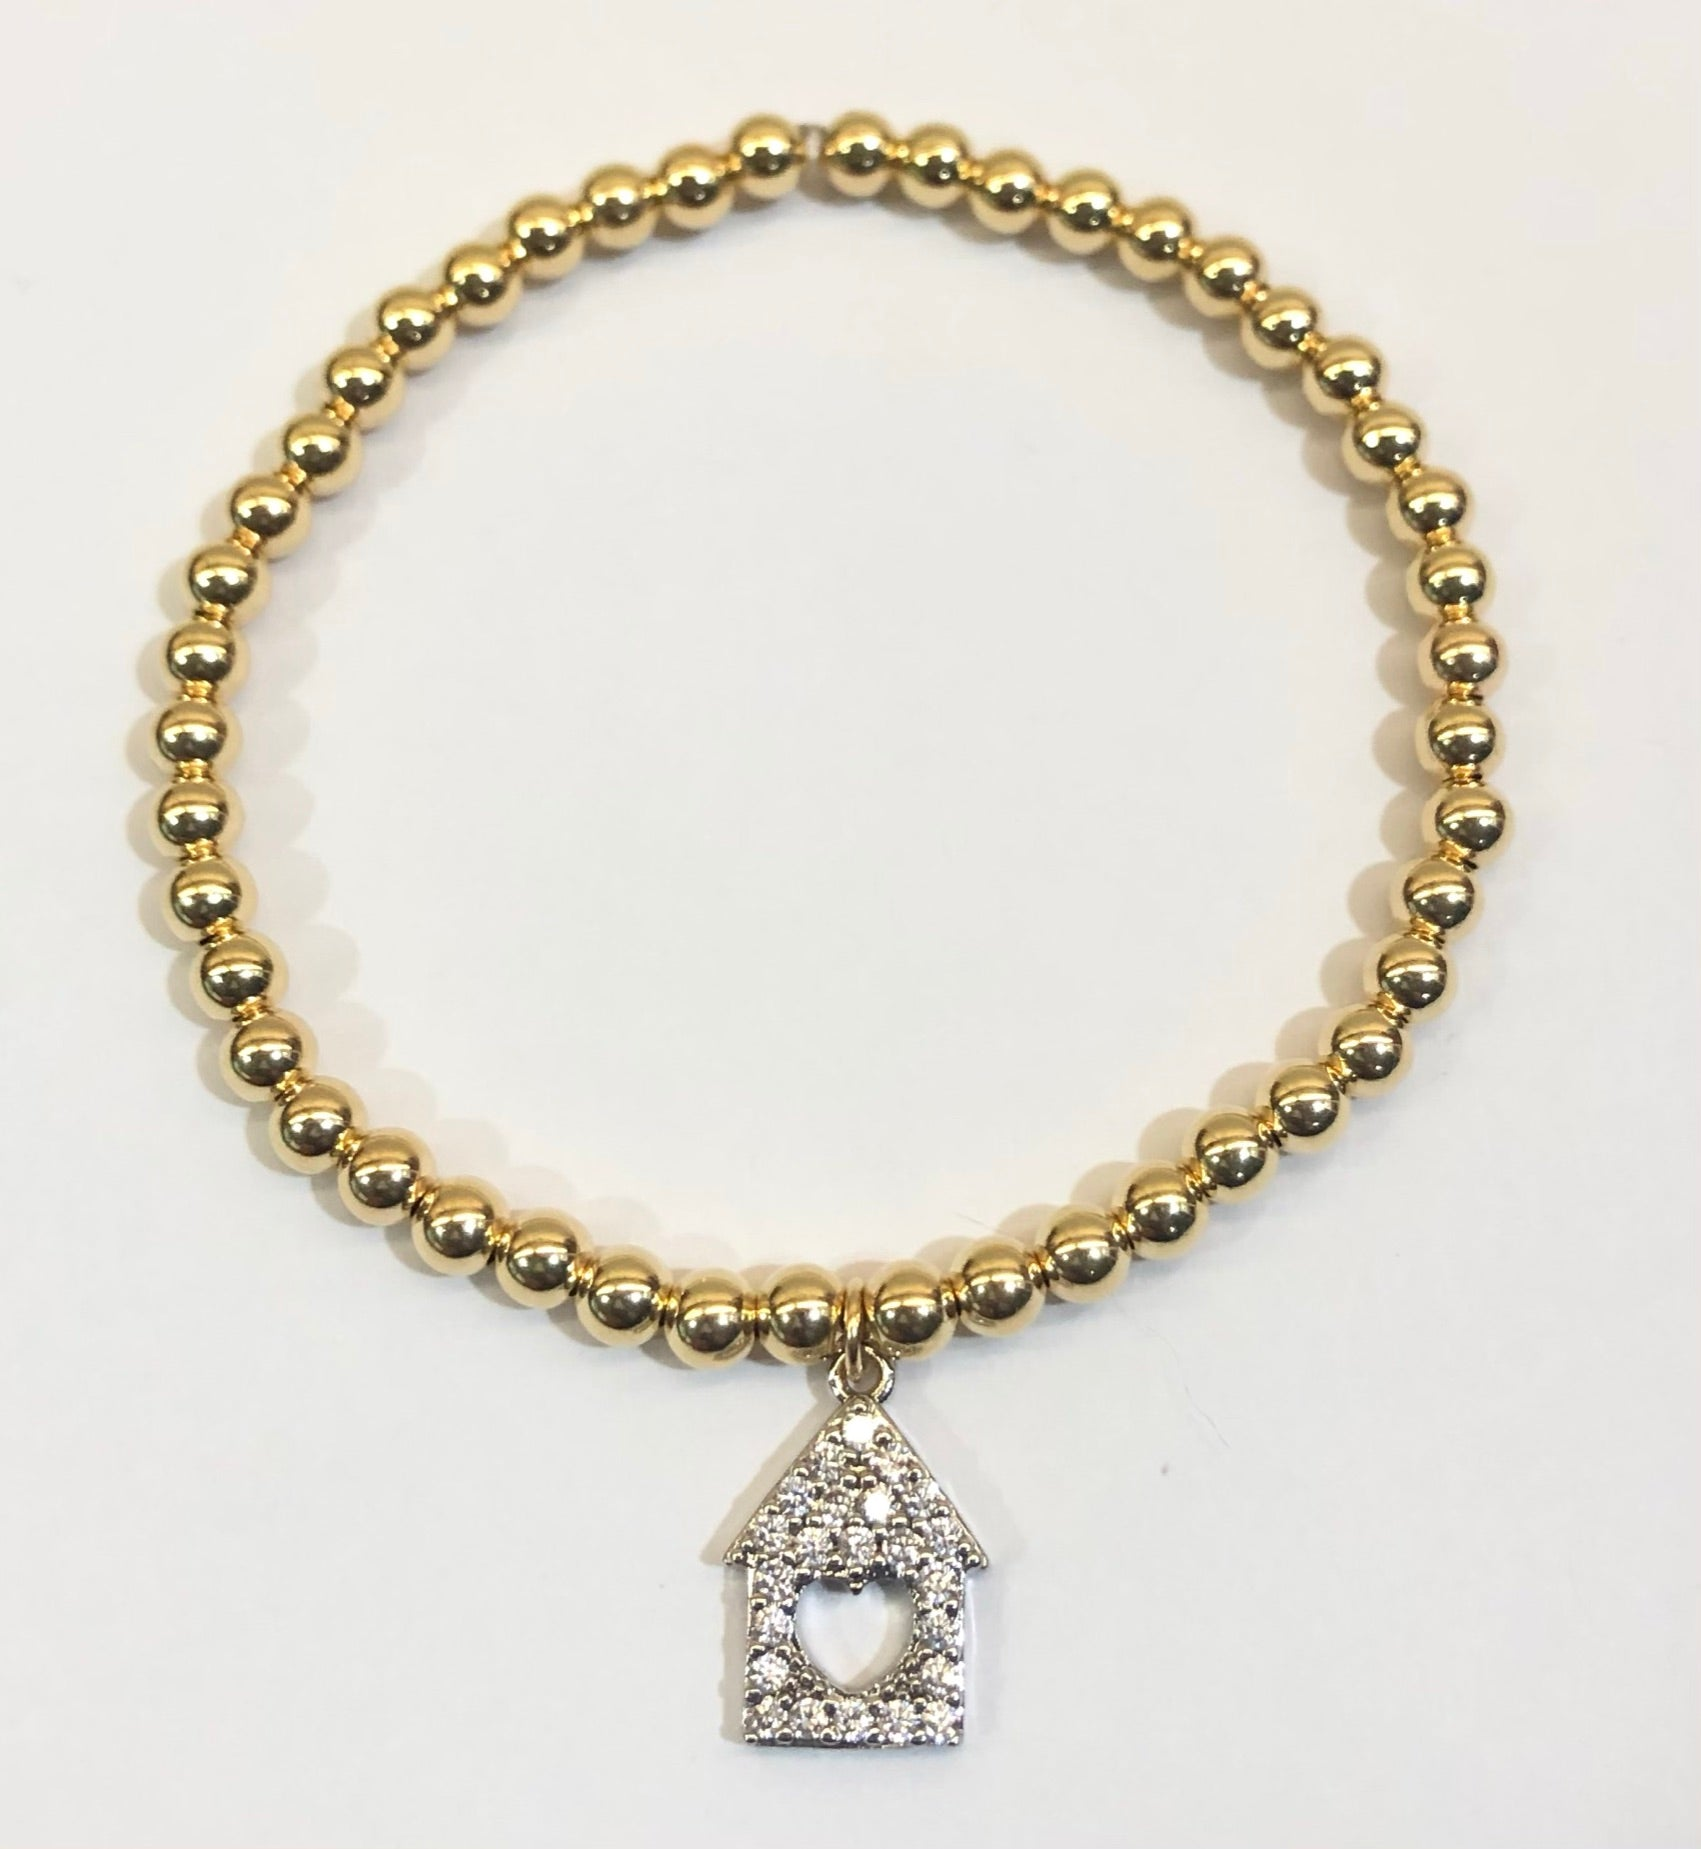 4mm 14k Gold Filled Bead Bracelet CZ Jeweled House with Heart Cutout